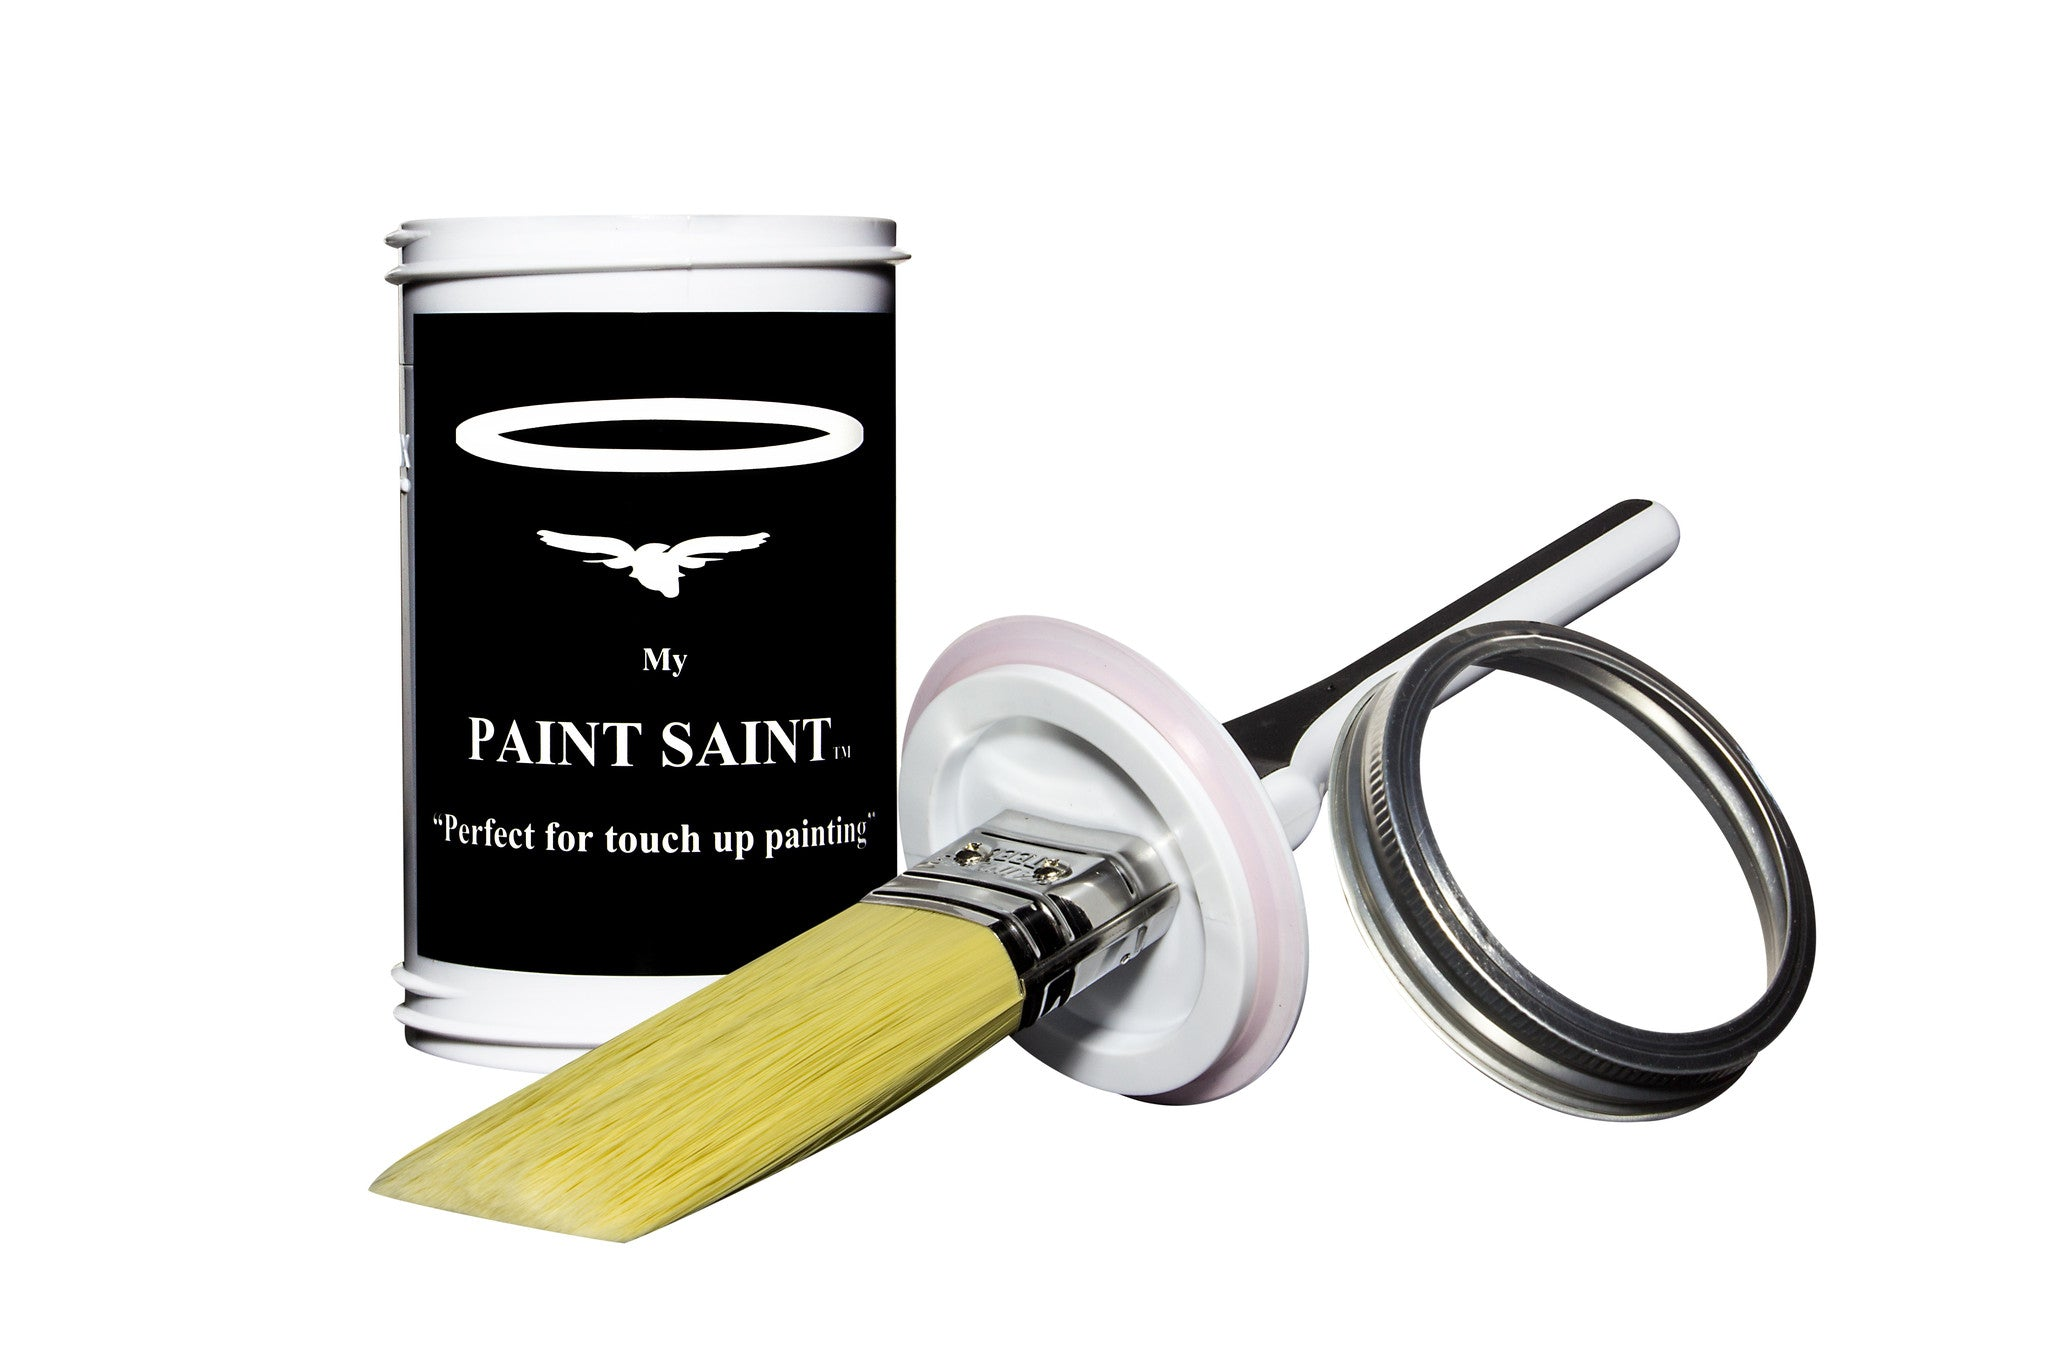 20 Paint Saints -The Ultimate Touch Up Paint Brush and Can for Interior or Exterior Painting - Businesses -Hotels-Home Builders-Realtors-Restaraunts-Churches-Property Management Companies-Casinos- etc.